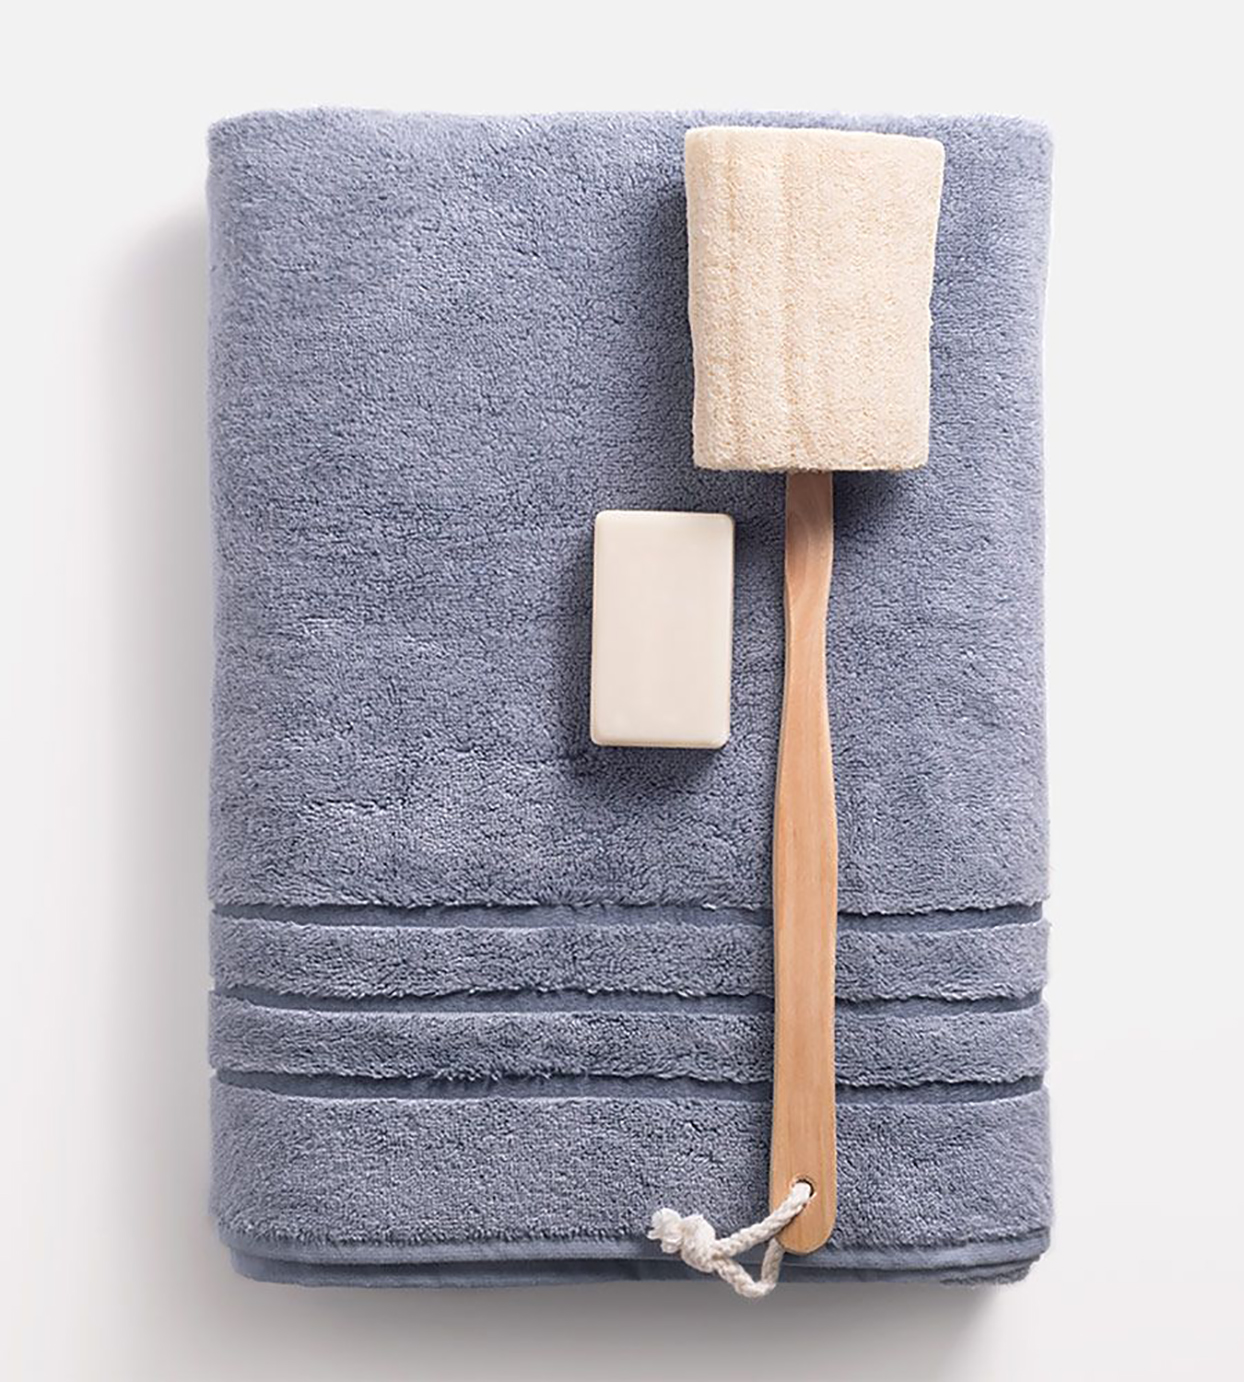 folded purple bath towel with soap and scrubbing brush on top